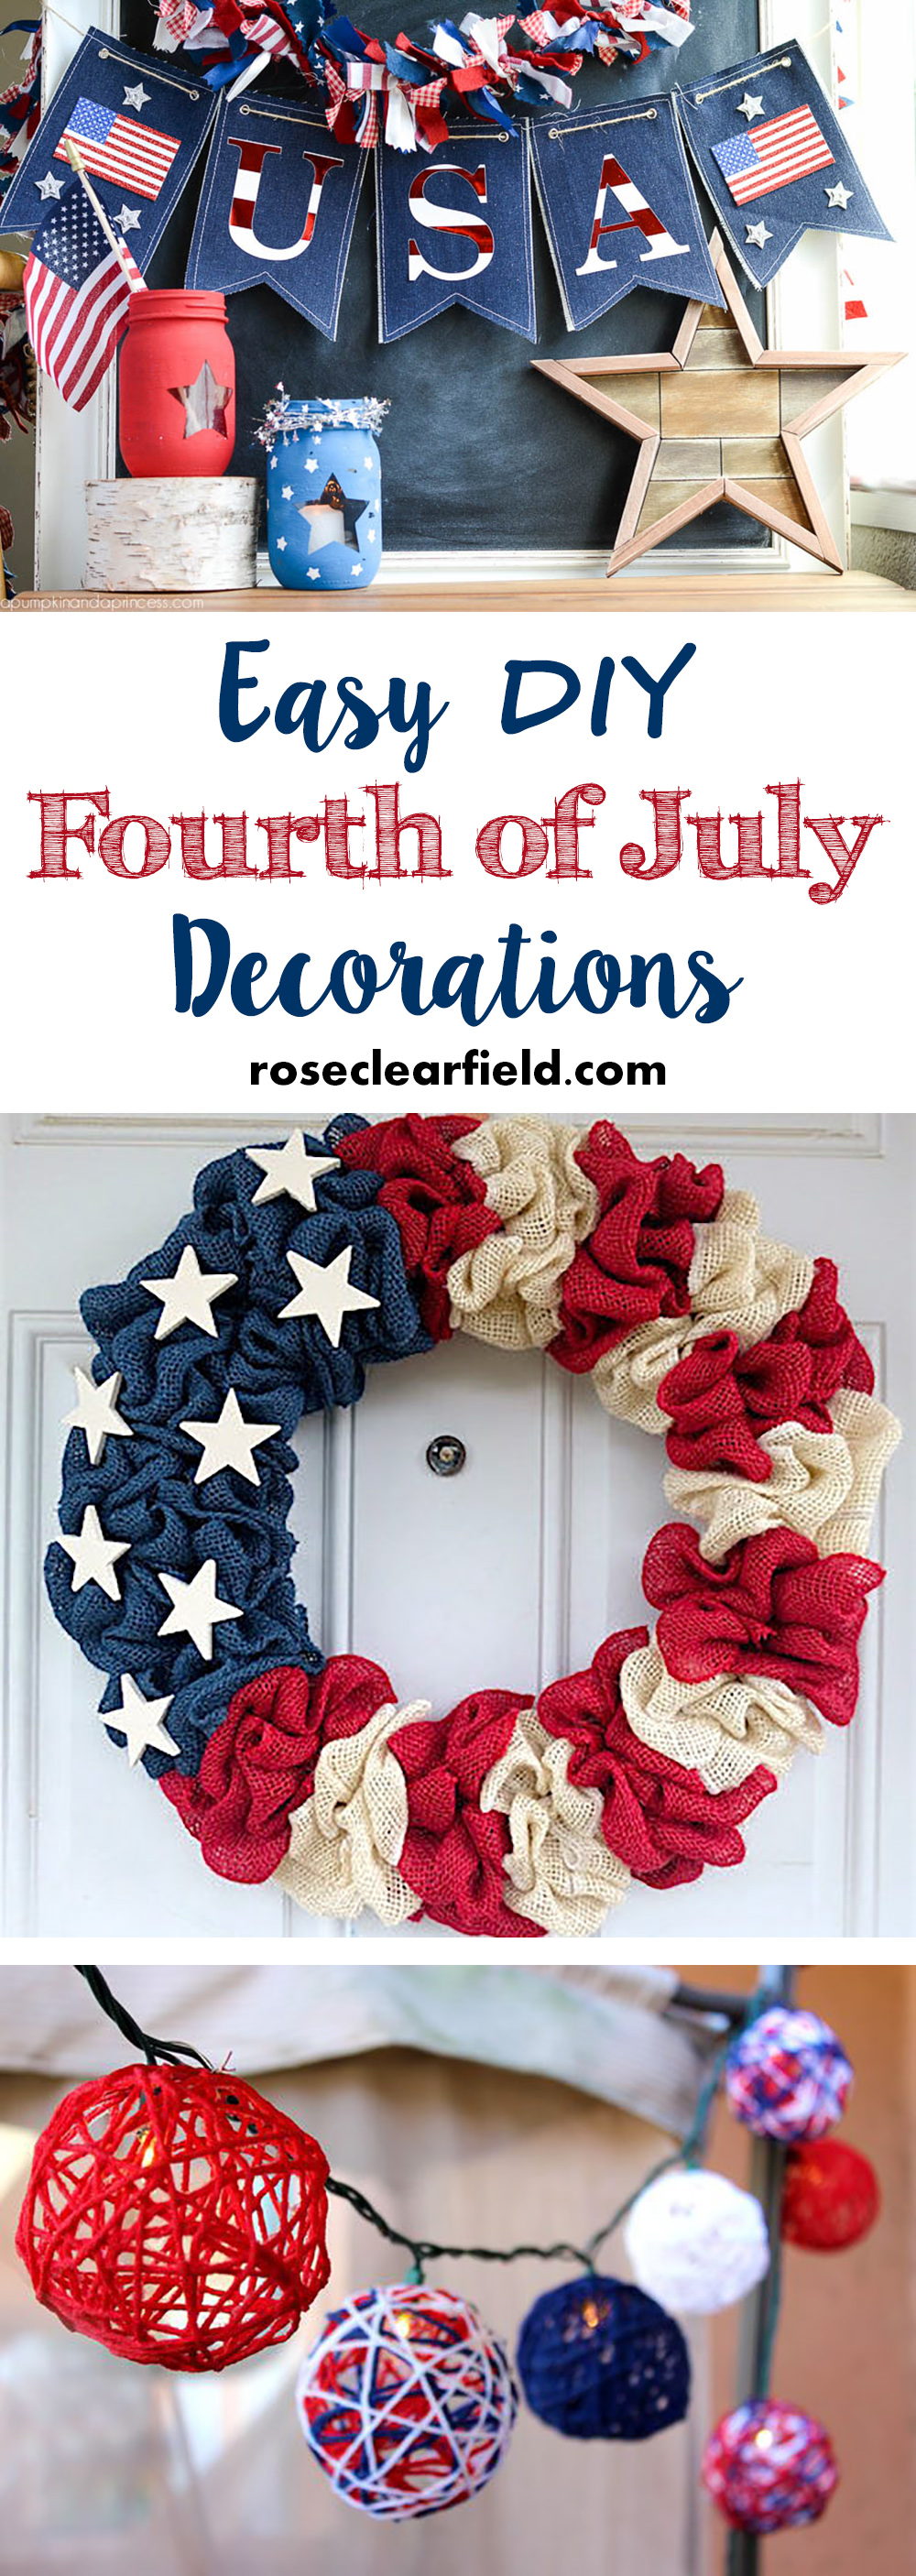 easy diy fourth of july decorations rose clearfield. Black Bedroom Furniture Sets. Home Design Ideas